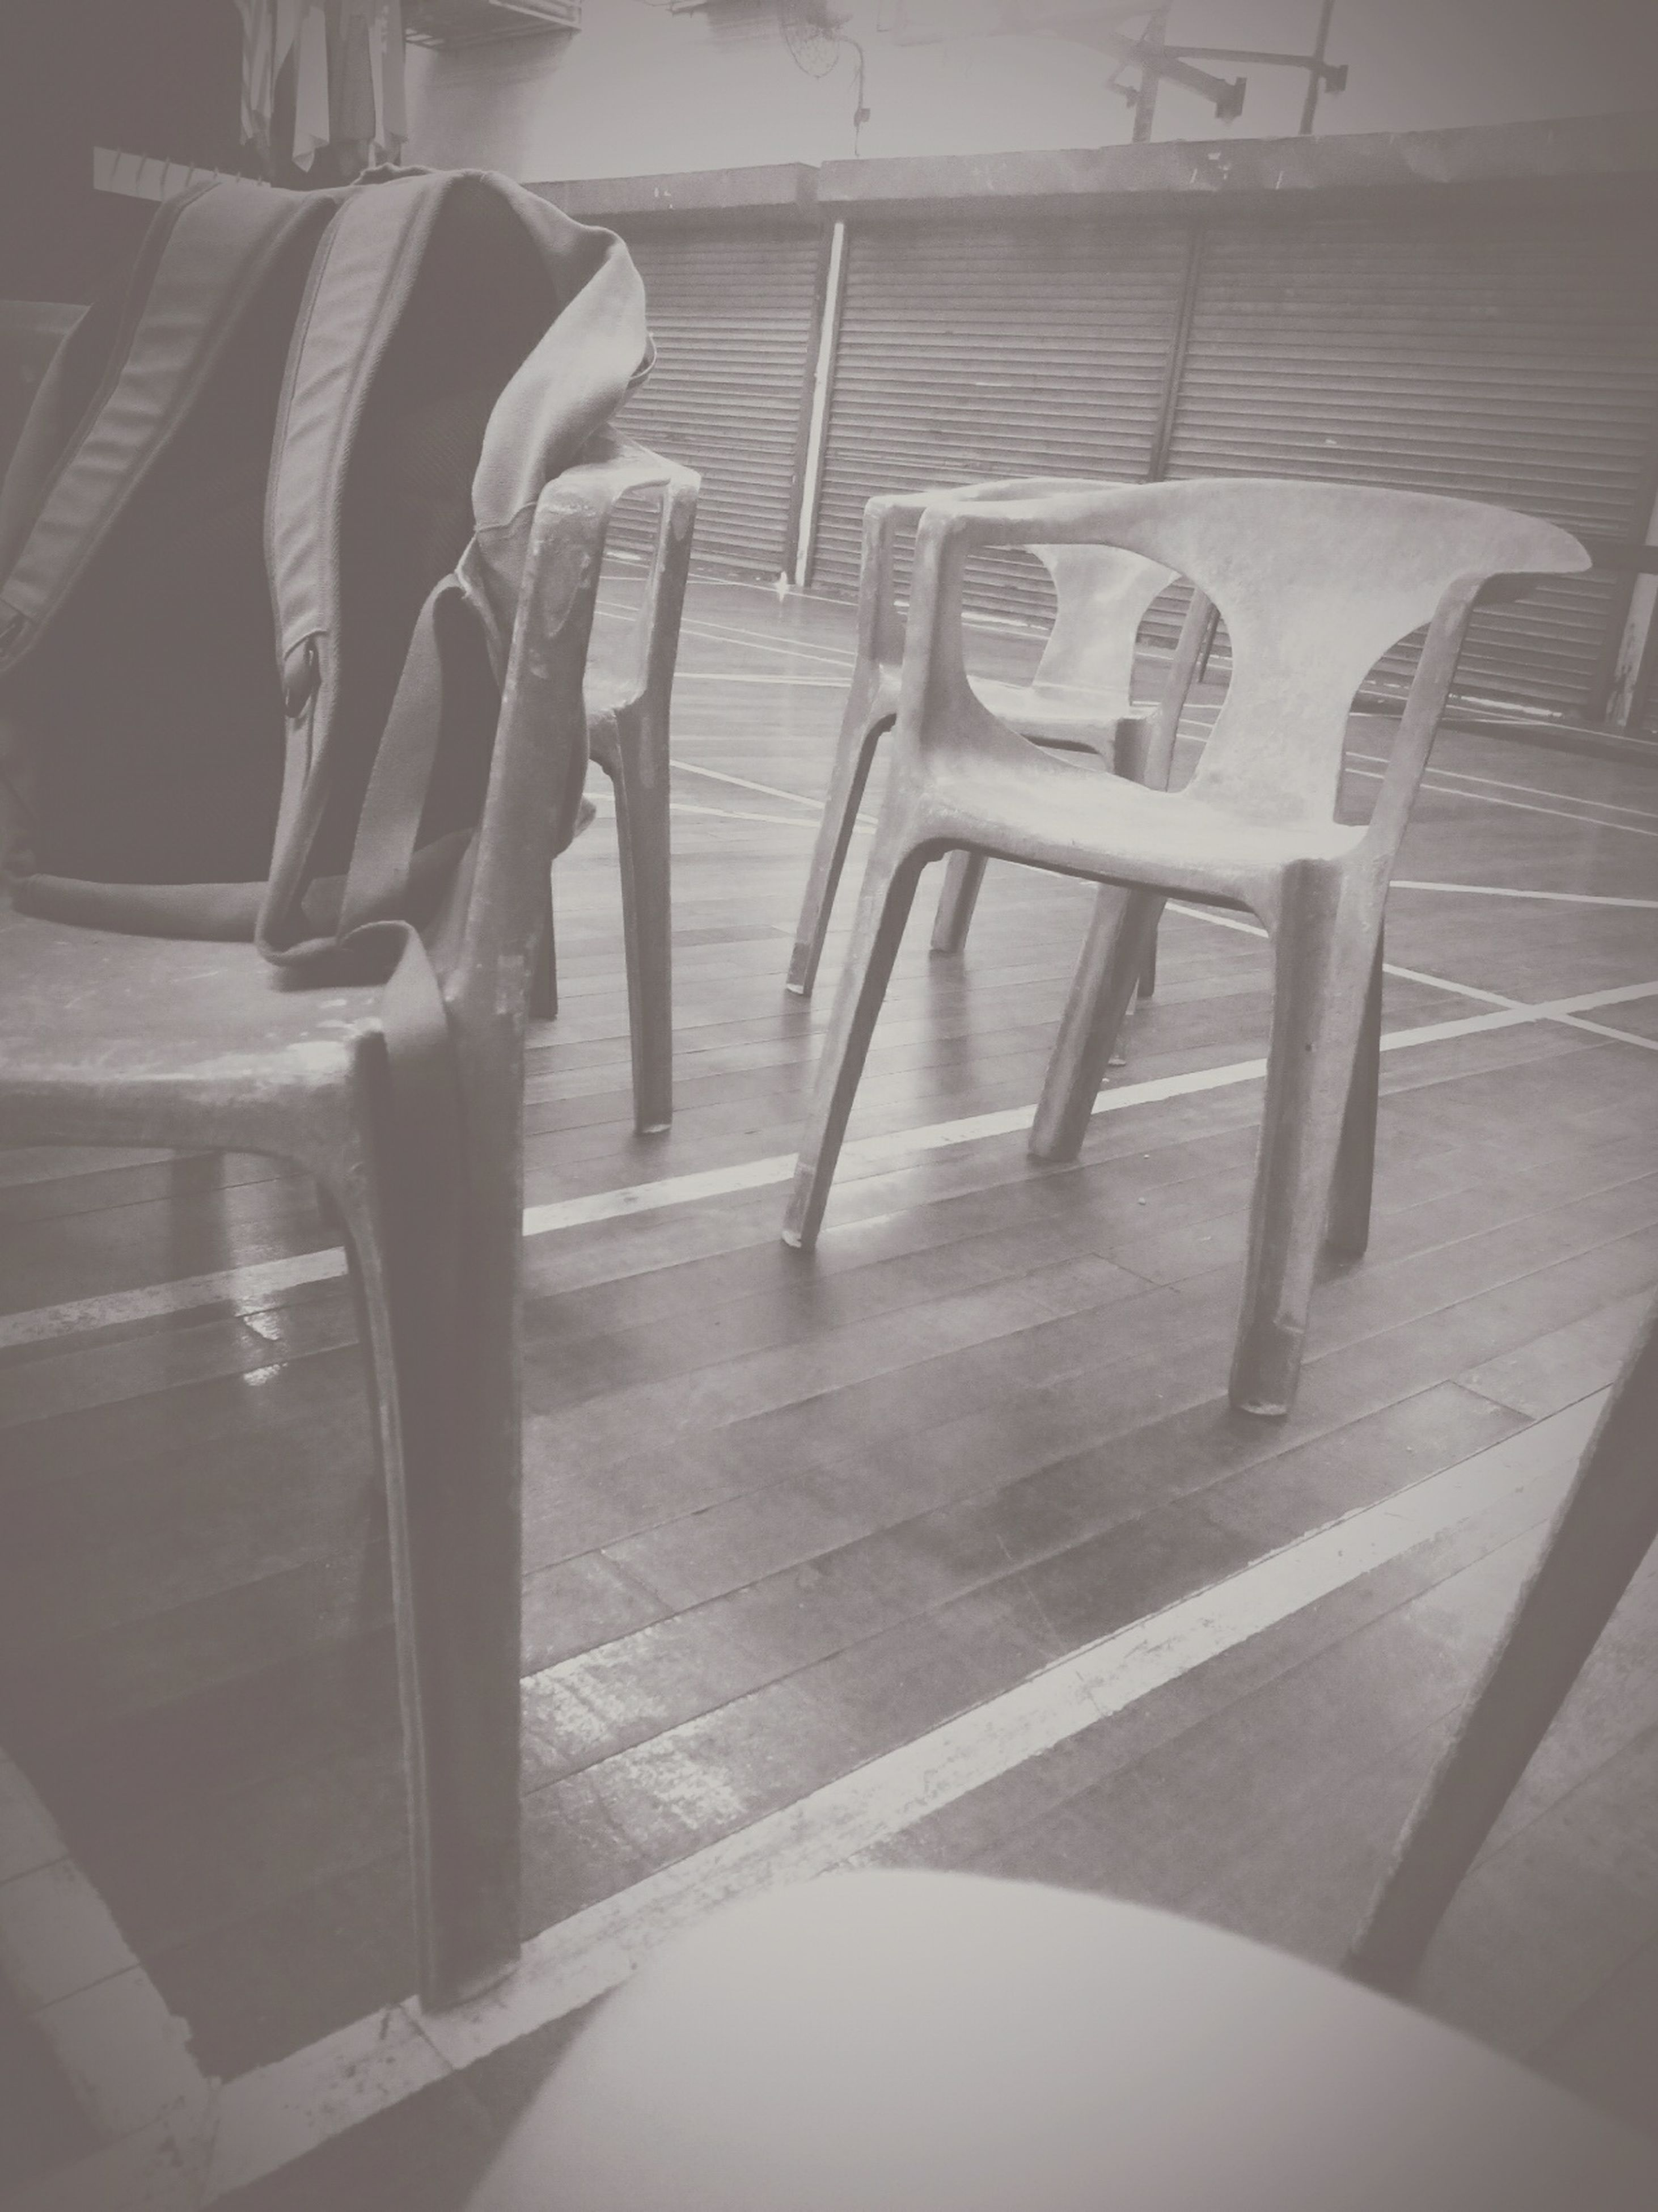 indoors, empty, chair, absence, seat, shadow, flooring, sunlight, in a row, tiled floor, table, furniture, no people, day, built structure, high angle view, floor, bench, ceiling, architecture